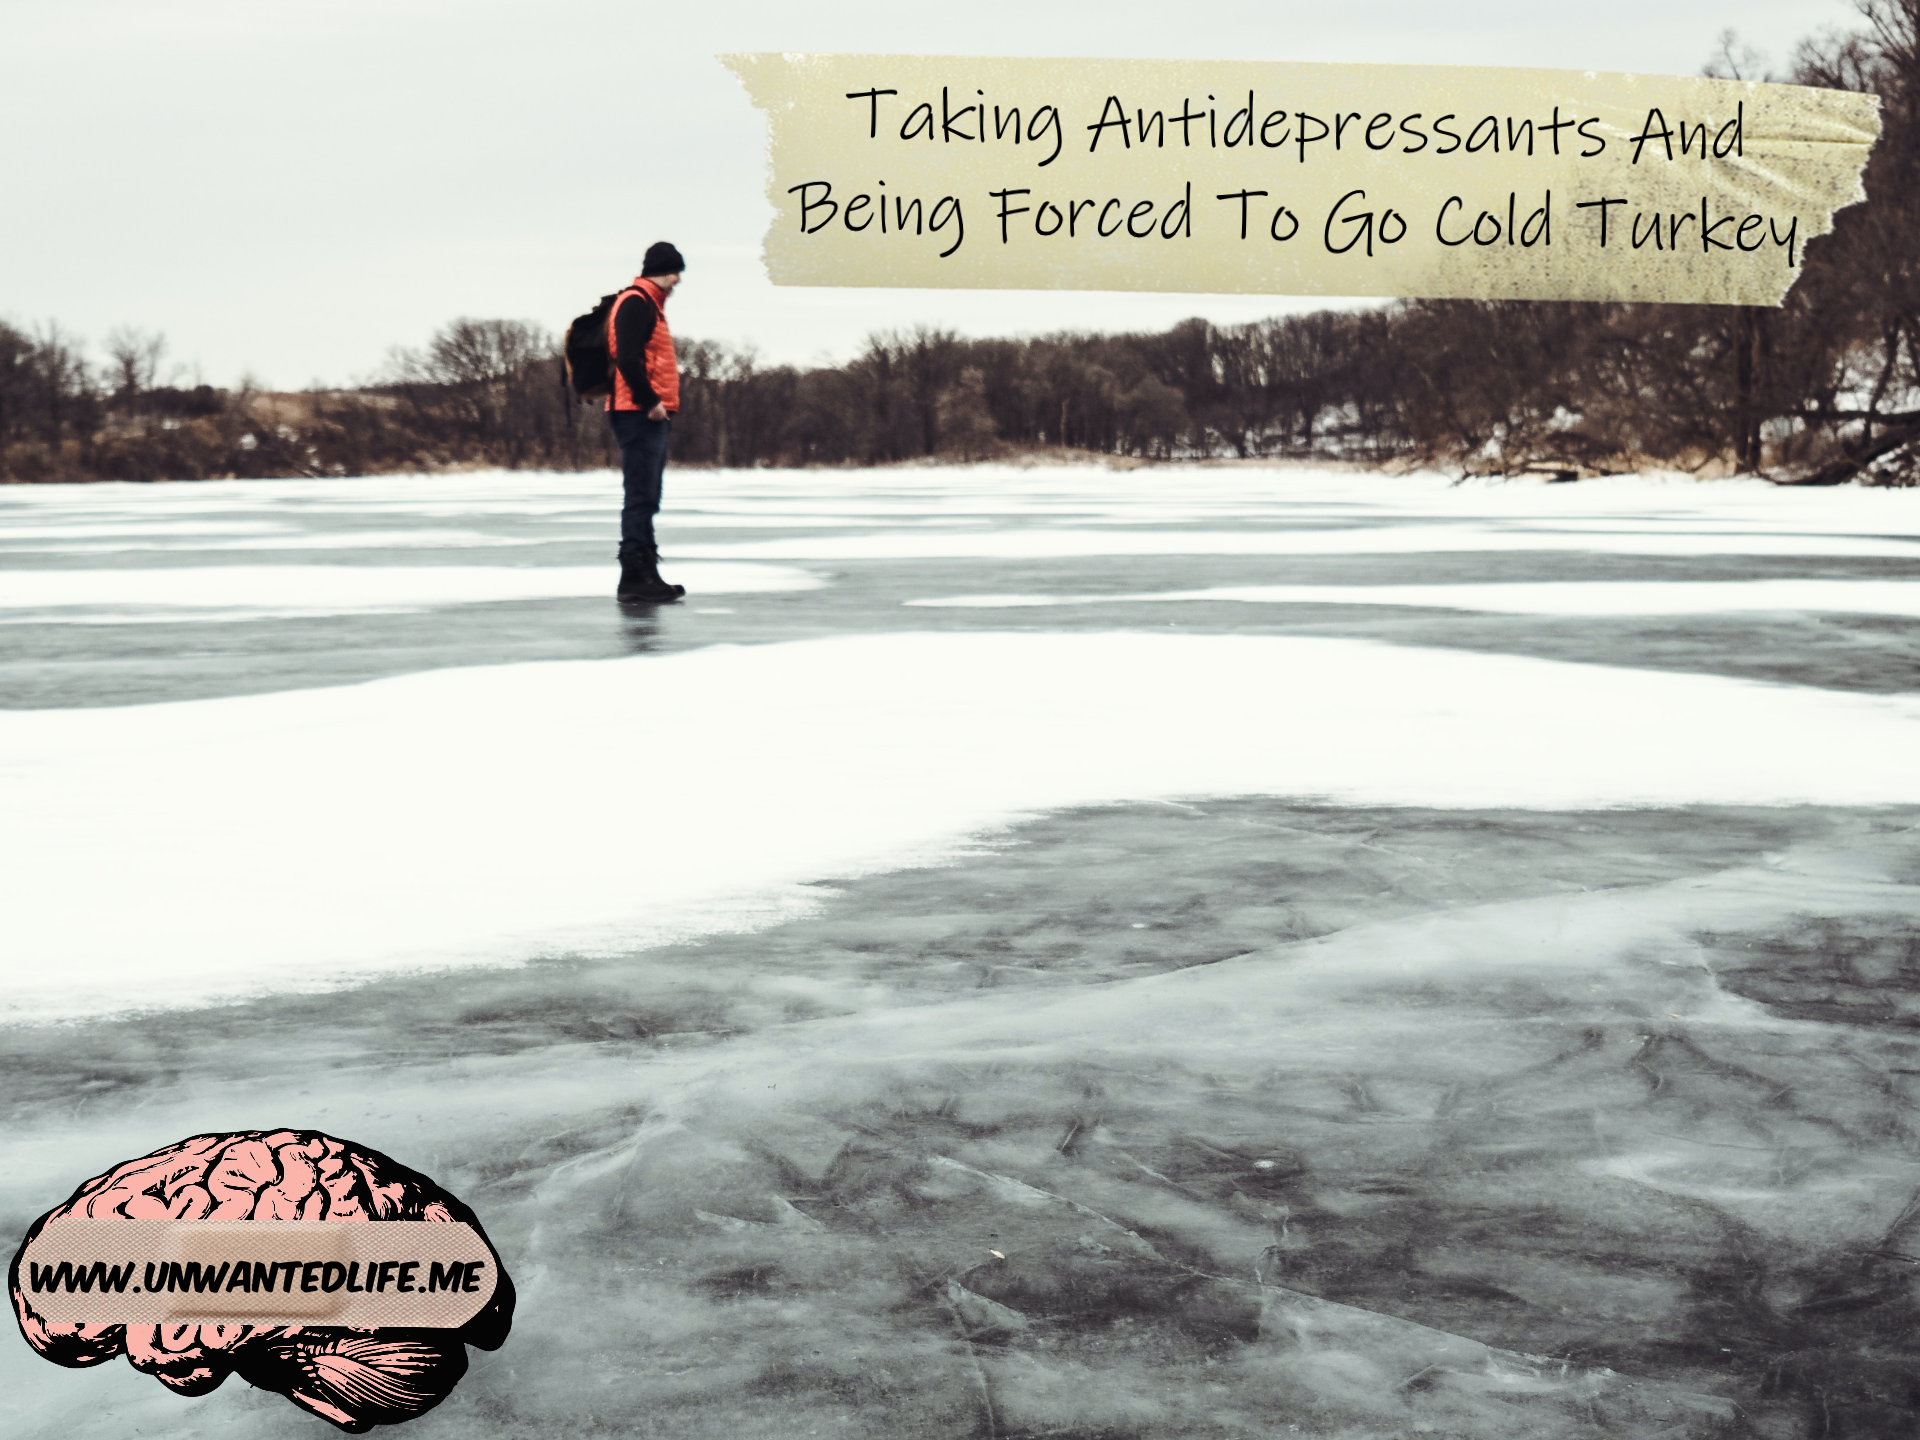 A guy in winter clothing standing on a frozen over body of water during winter with the title of the article - Taking Antidepressants And Being Forced To Go Cold Turkey - in the top right corner